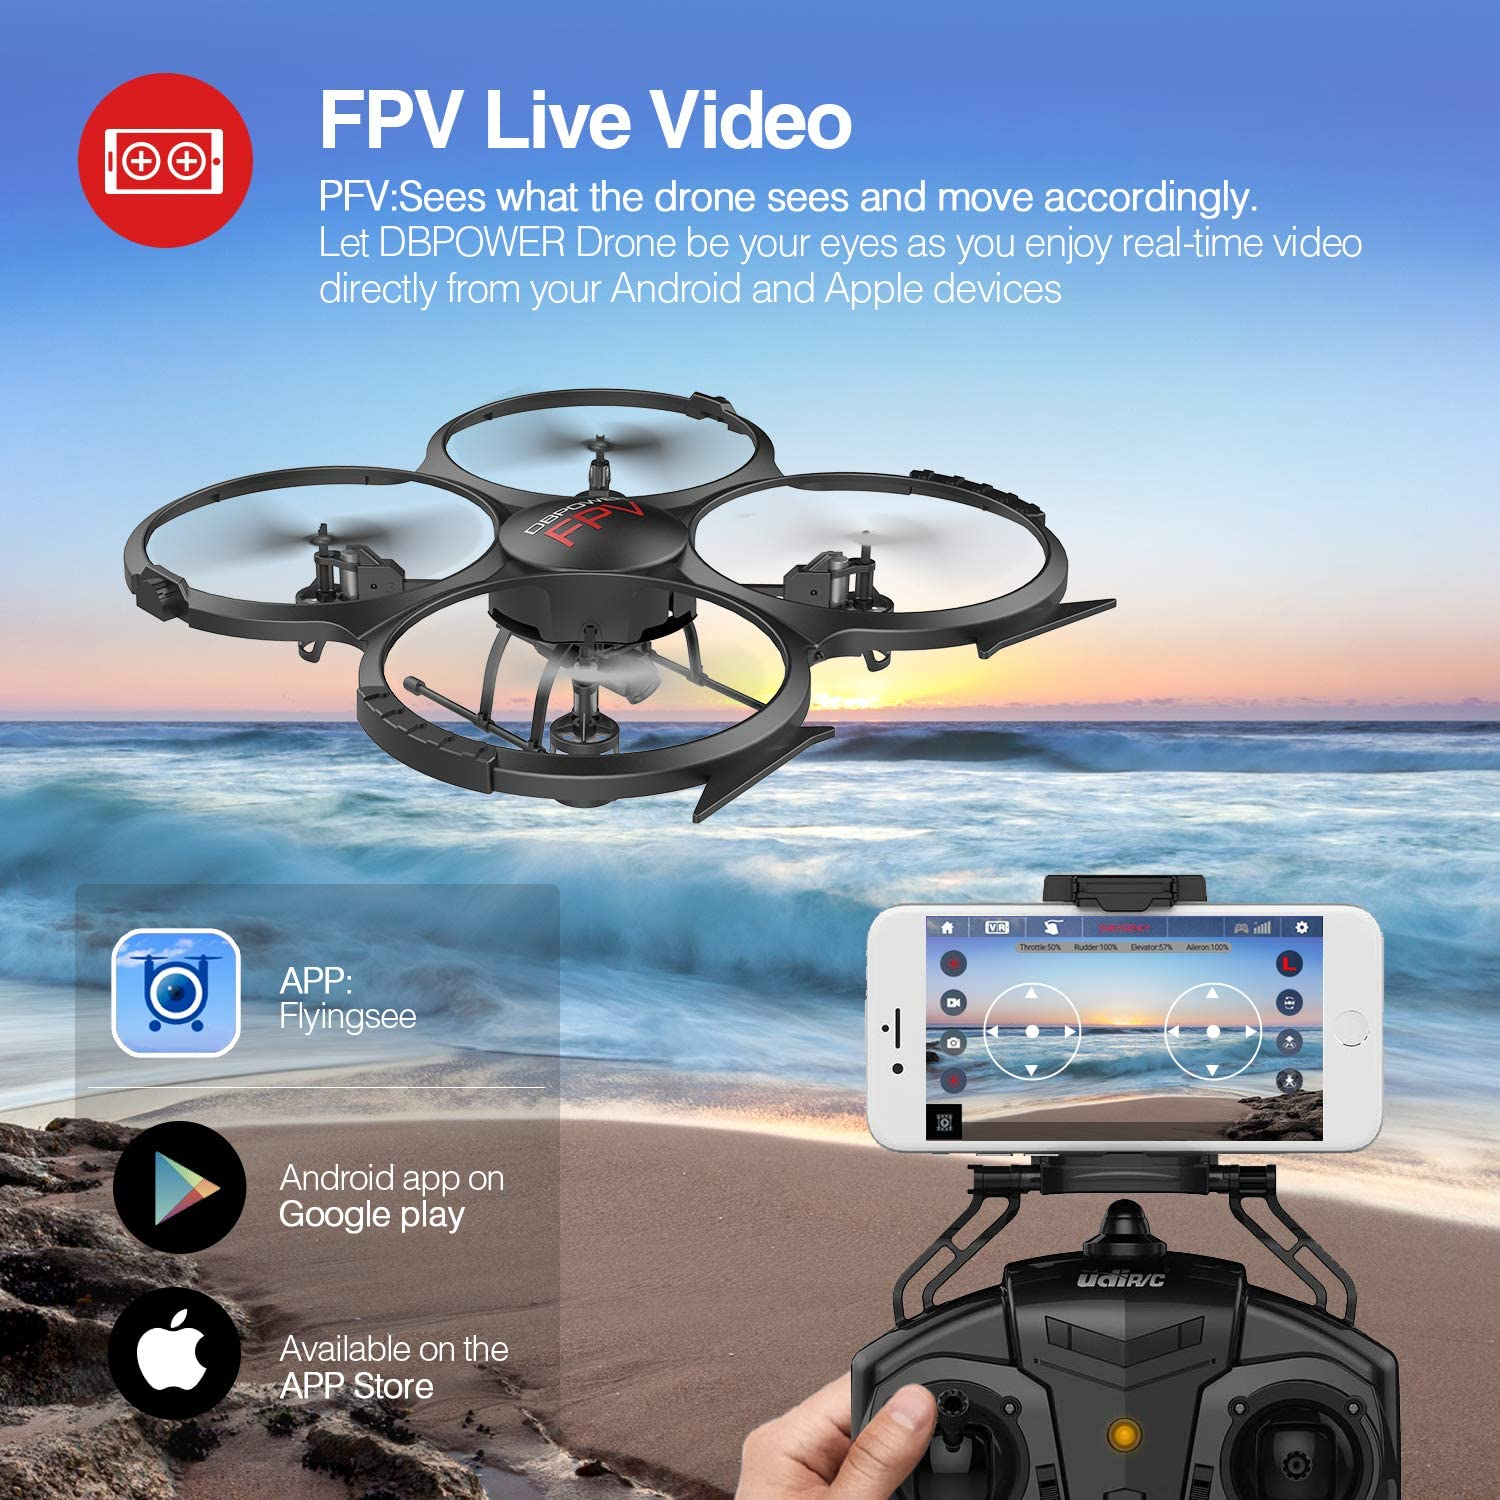 DBPOWER U818A aerial photography drone is at #6 for best drones under 150 dollars